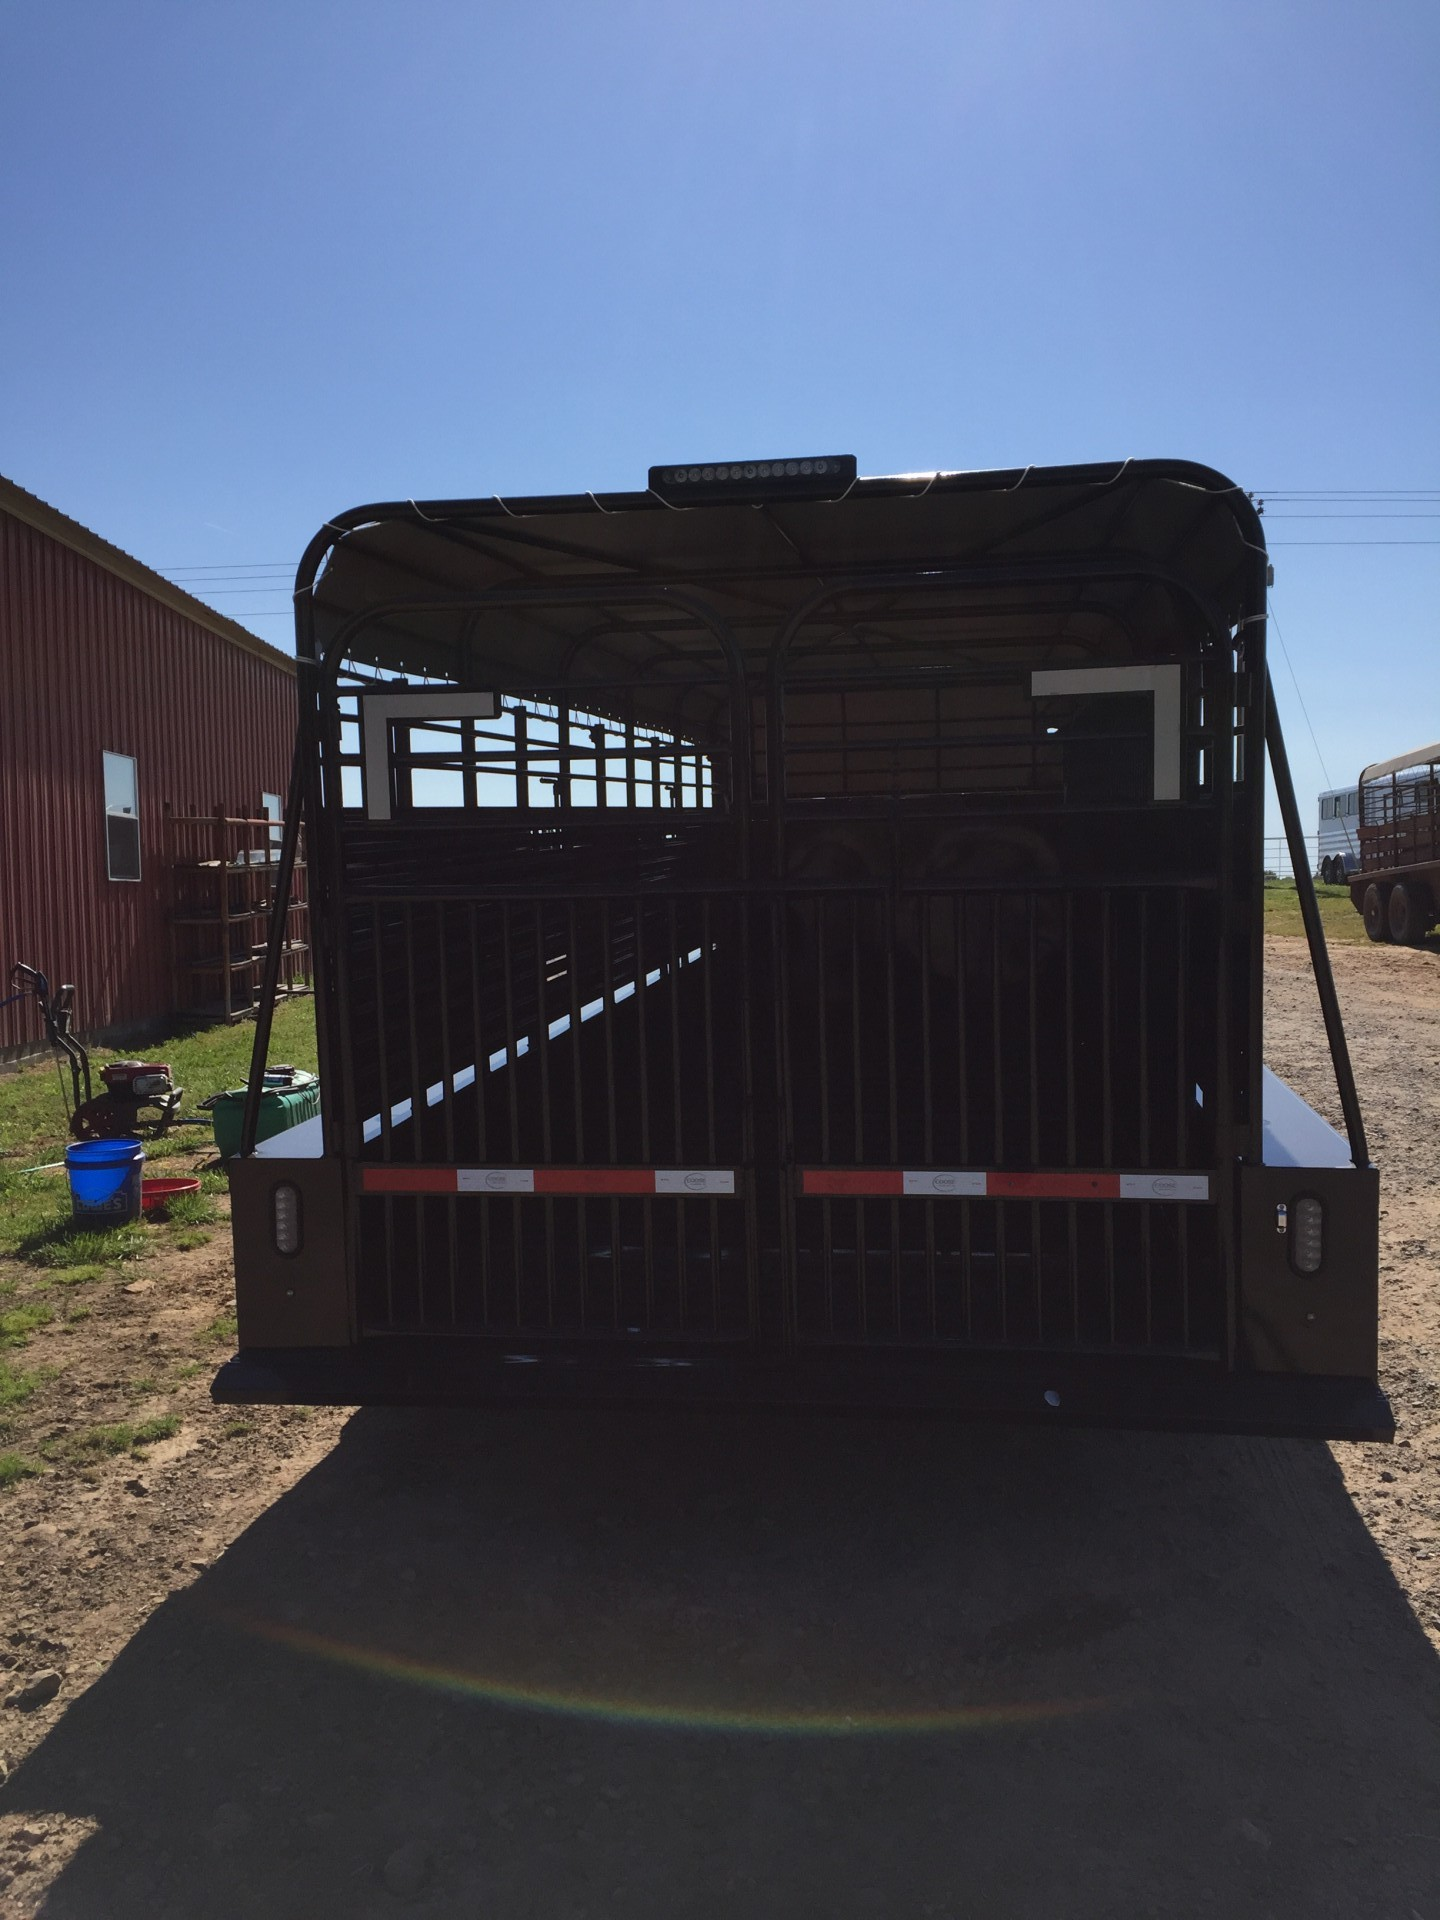 2016 Coose 24x6.8 stock trailer